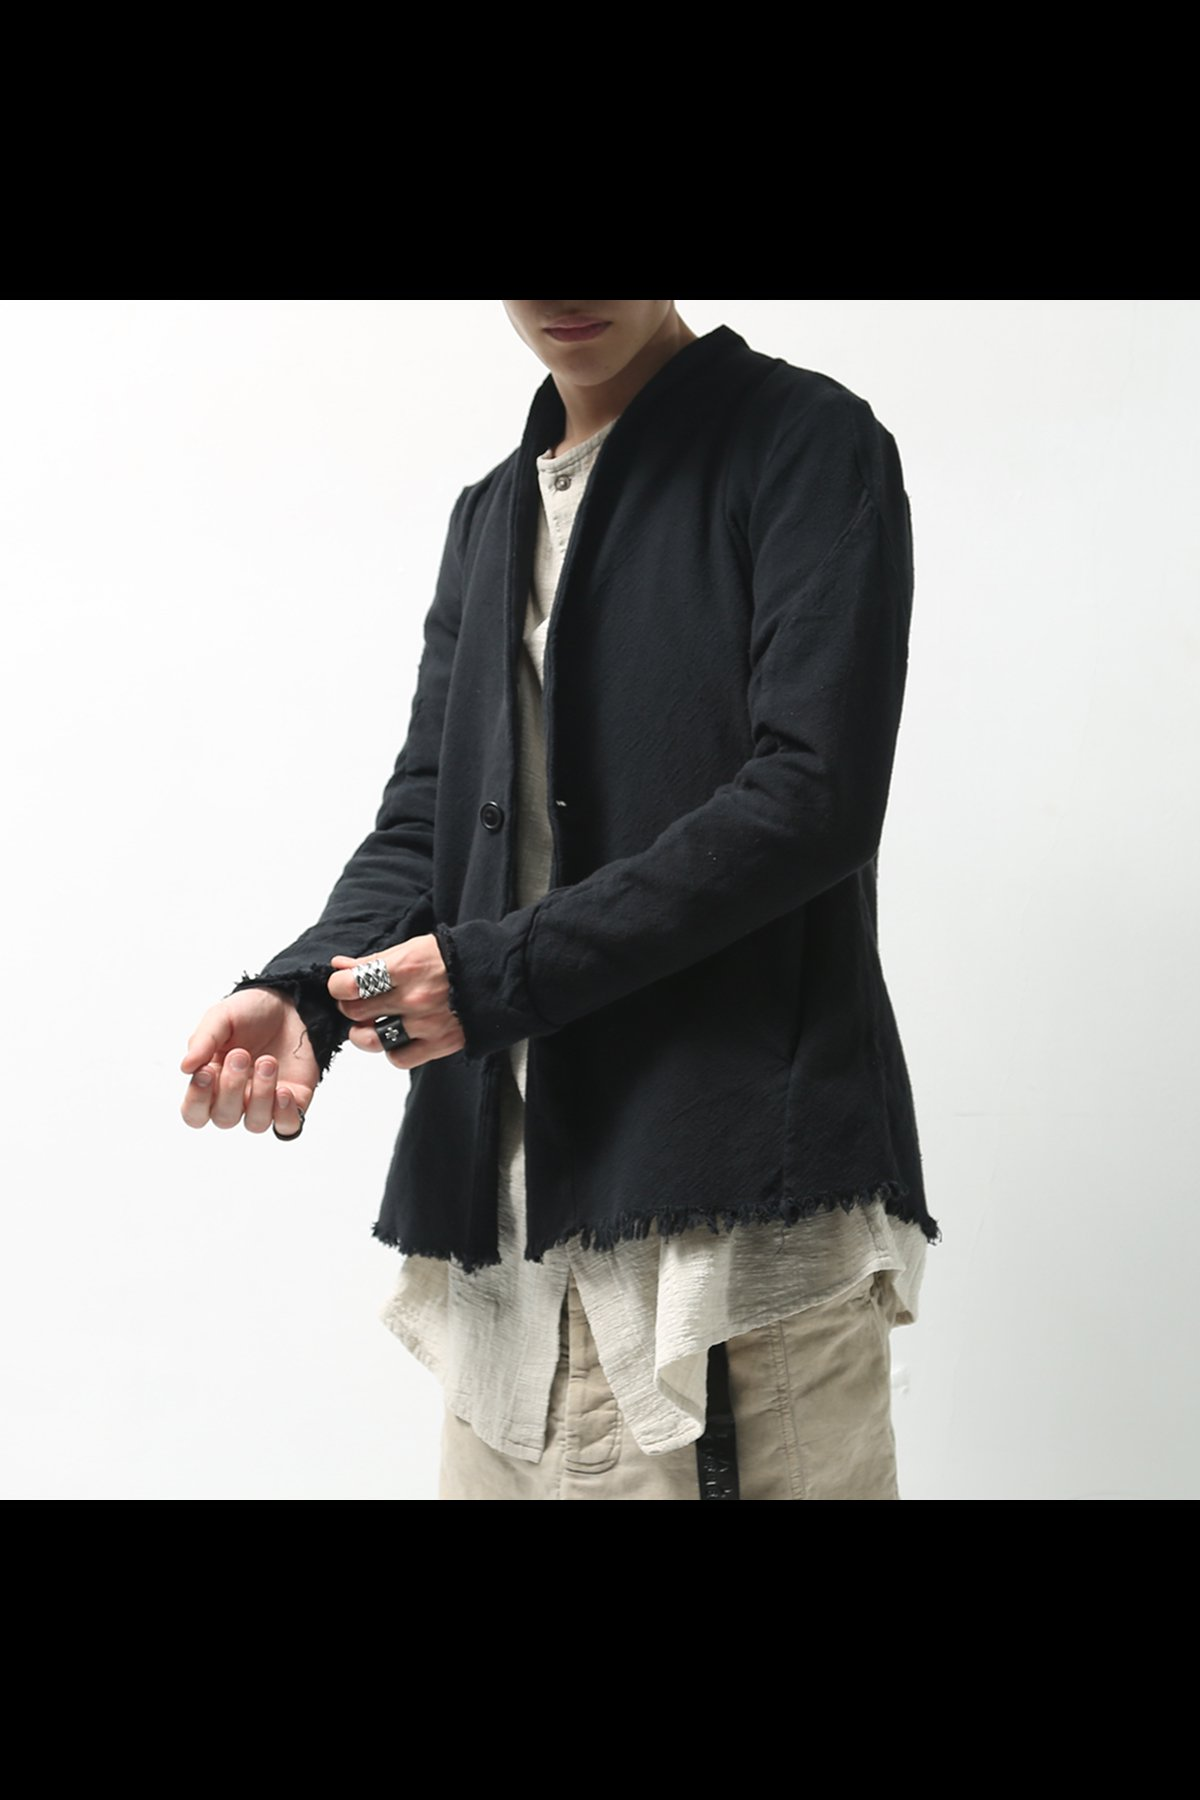 <img class='new_mark_img1' src='https://img.shop-pro.jp/img/new/icons20.gif' style='border:none;display:inline;margin:0px;padding:0px;width:auto;' />UNISEX COLLARLESS COTTON JACKET 119-602_BLACK